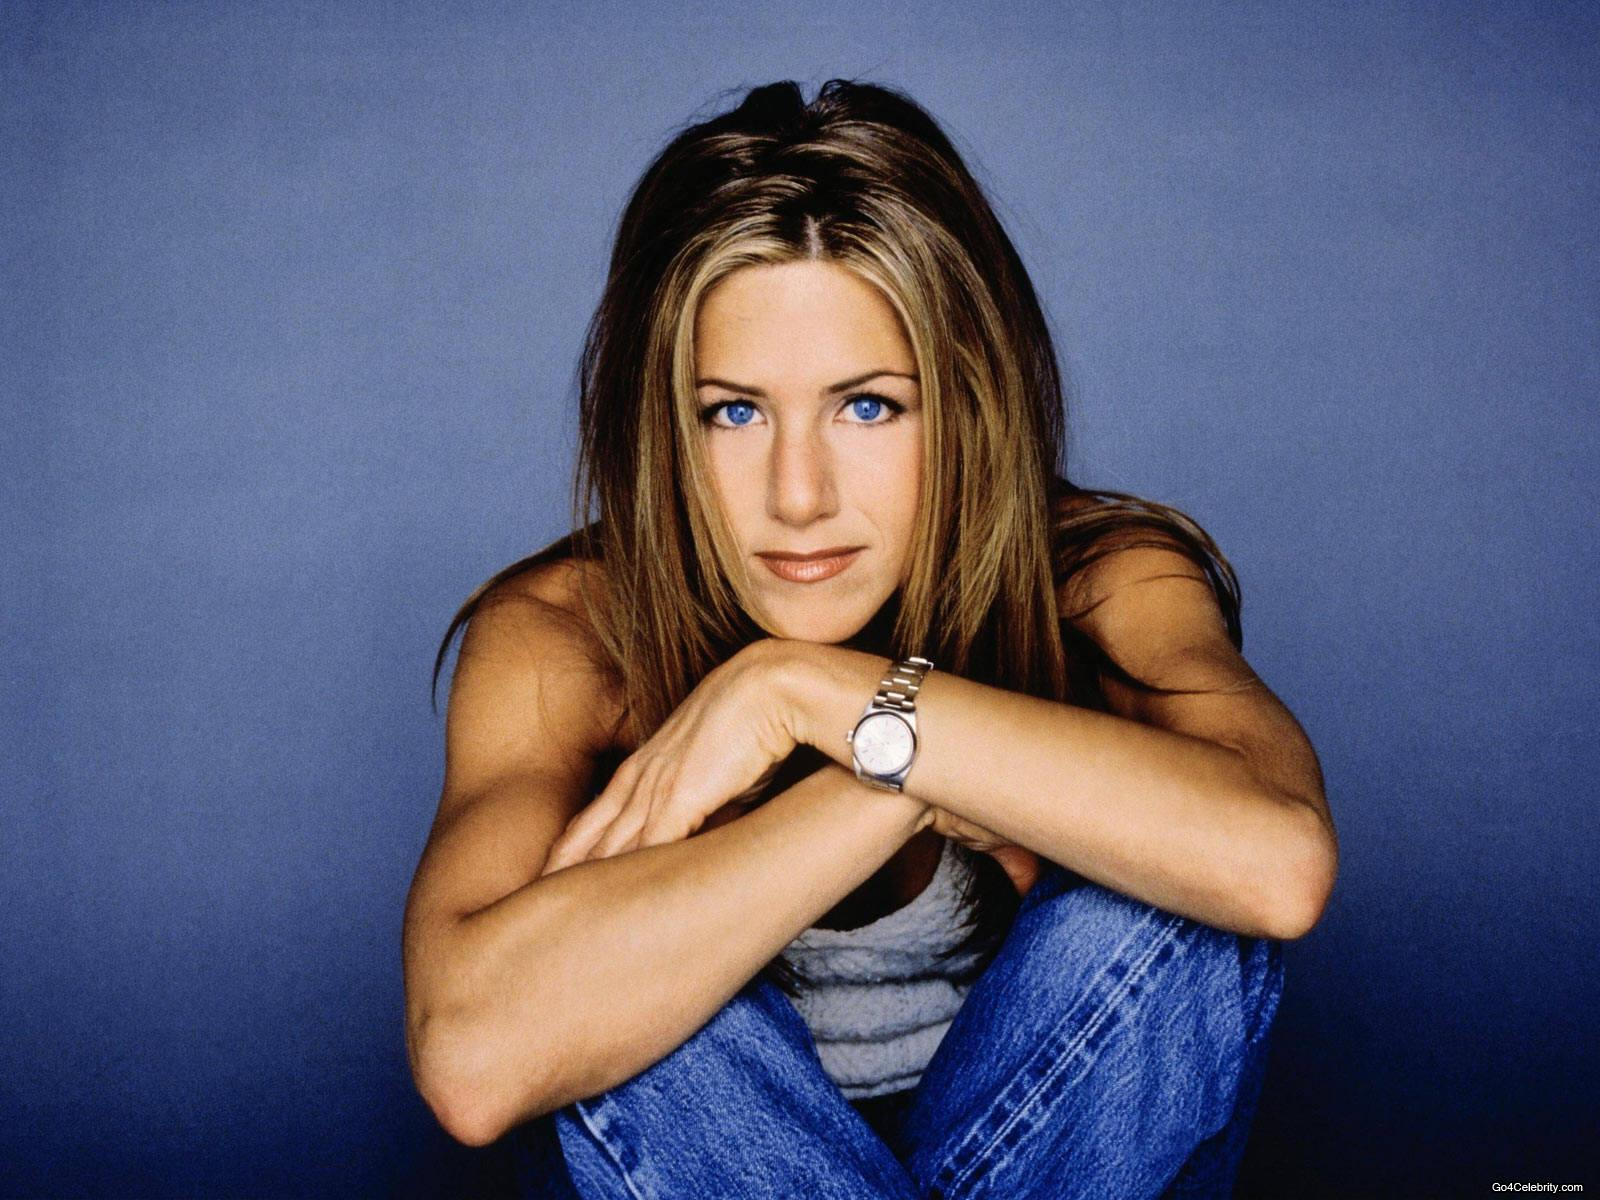 Jennifer Aniston - Jennifer Aniston Wallpaper (81355) - Fanpop Jennifer Aniston